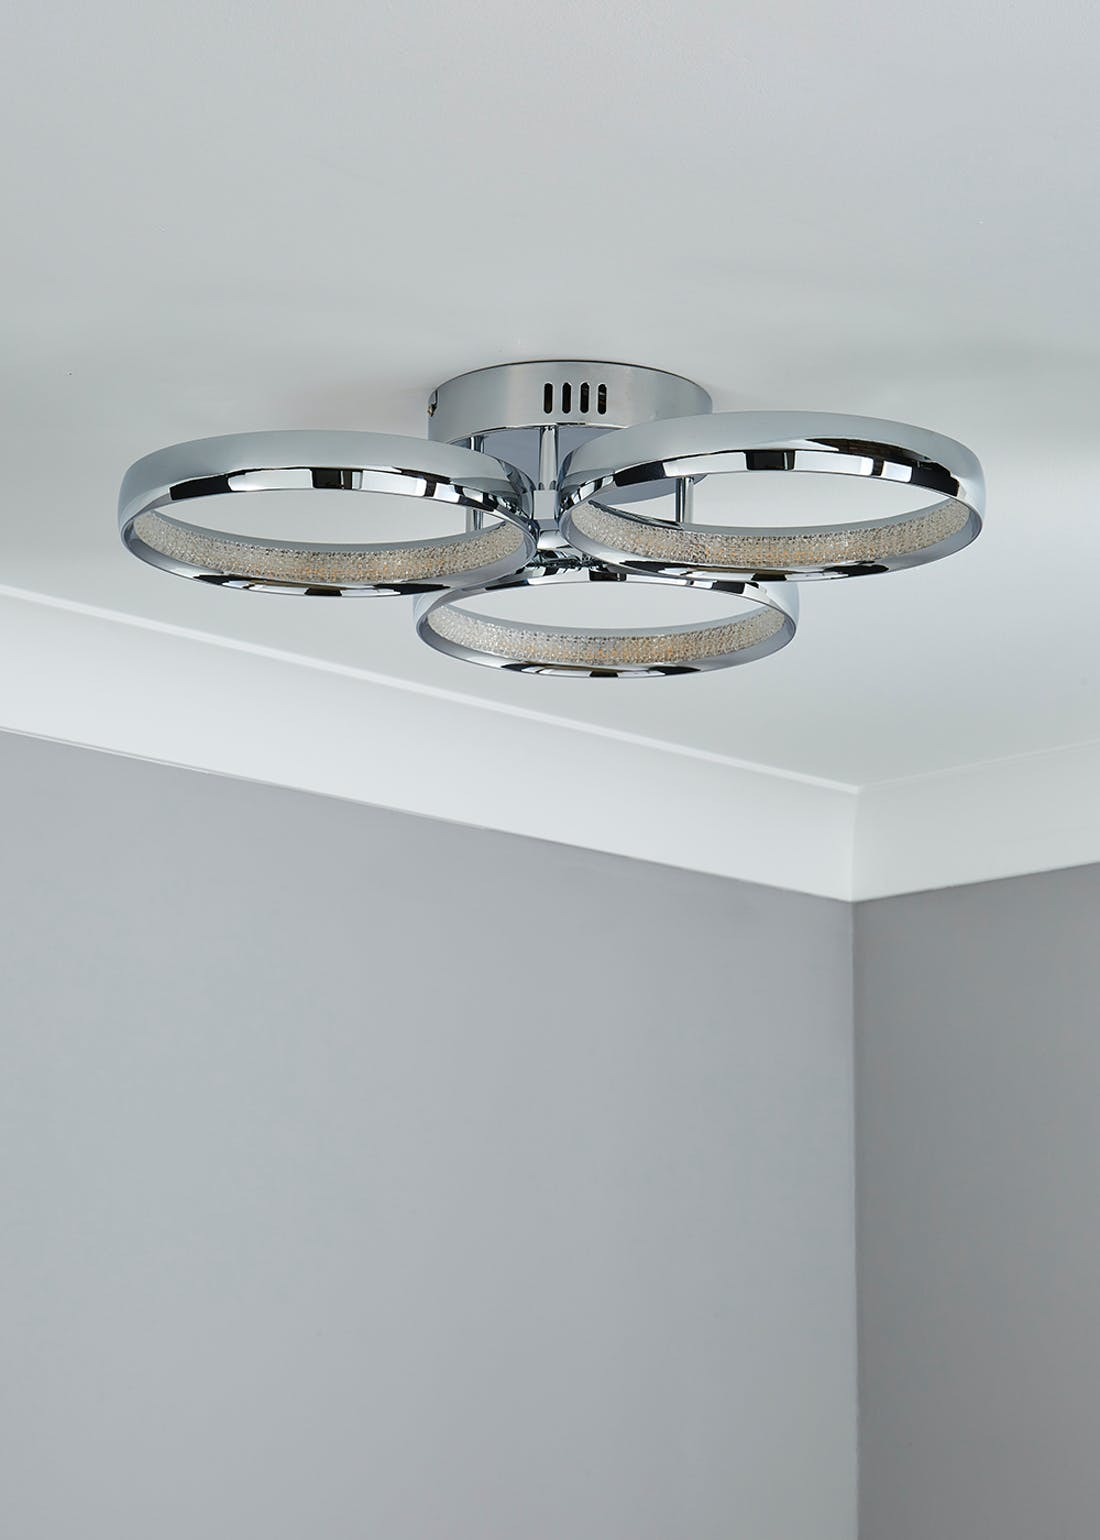 LED Ring Flush Ceiling Light (H11cm x W56cm)